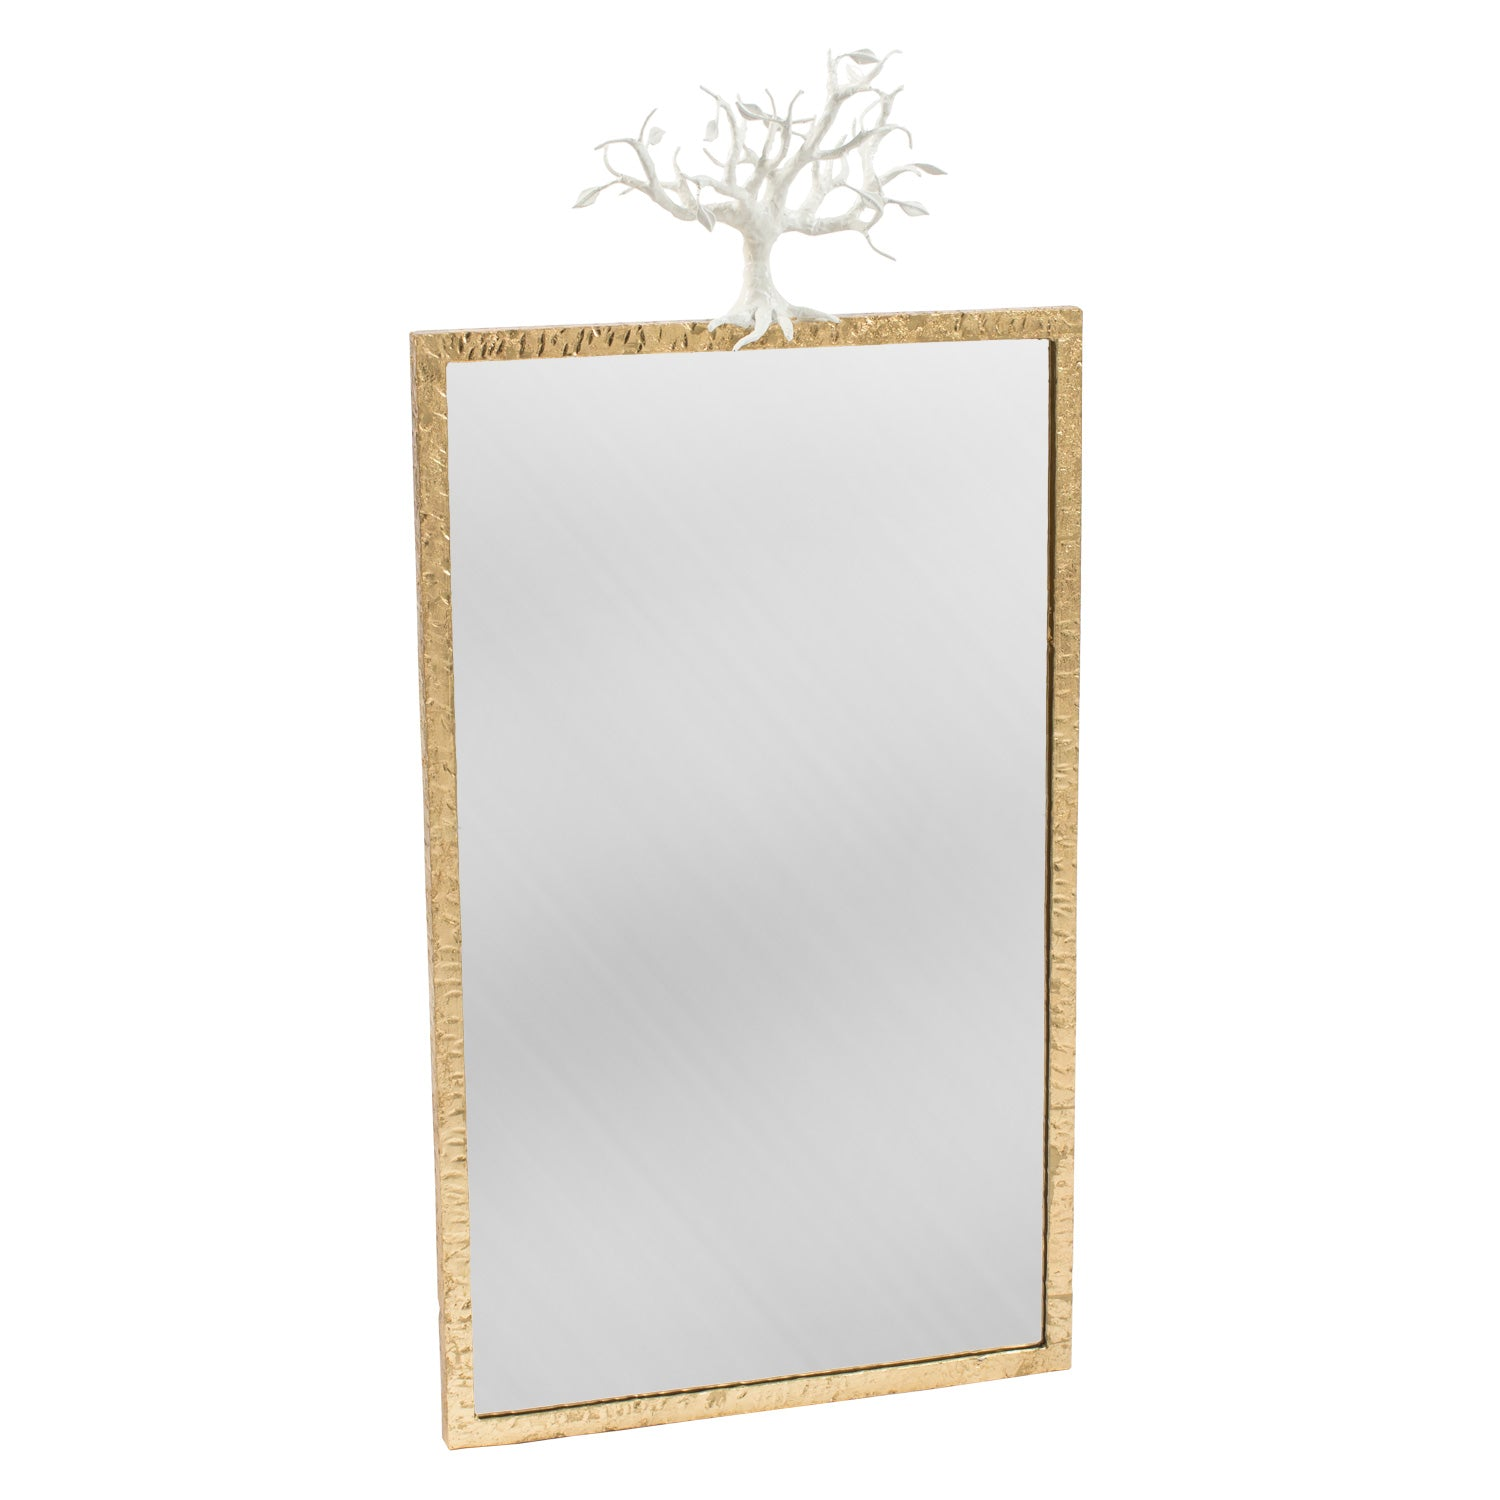 Designer Diego mirror with winter white tree